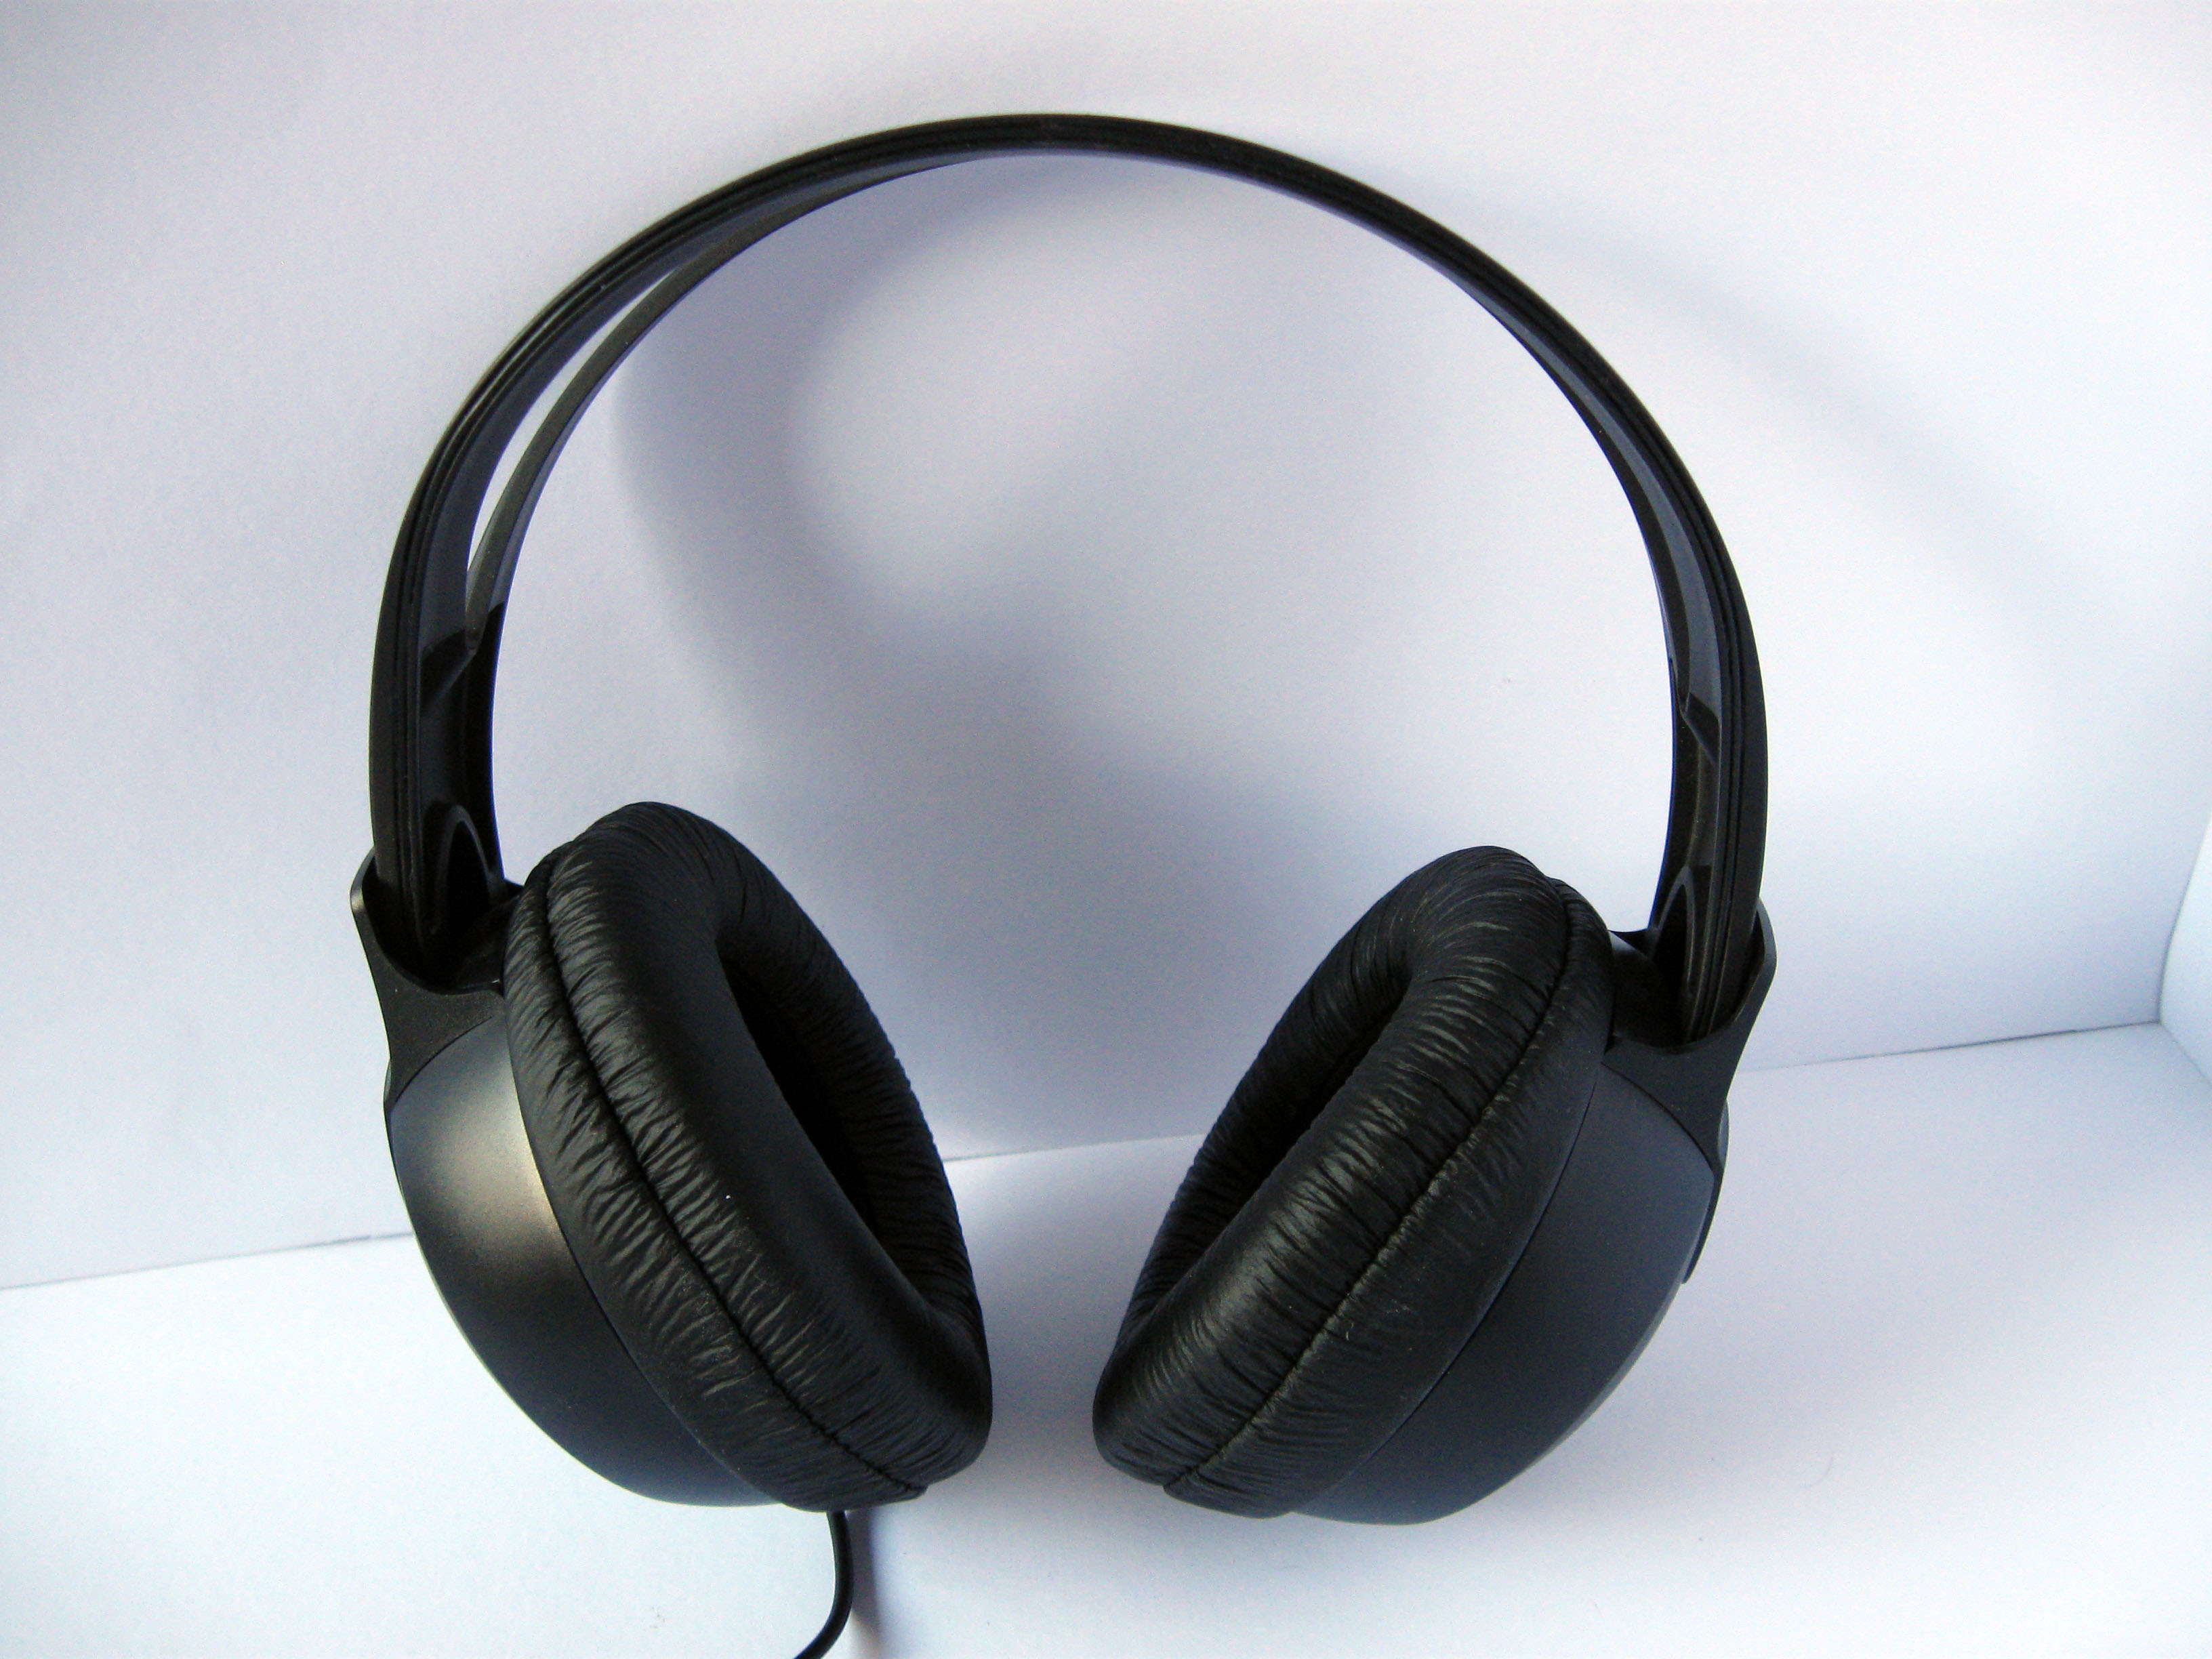 Noise-Reducing Headset